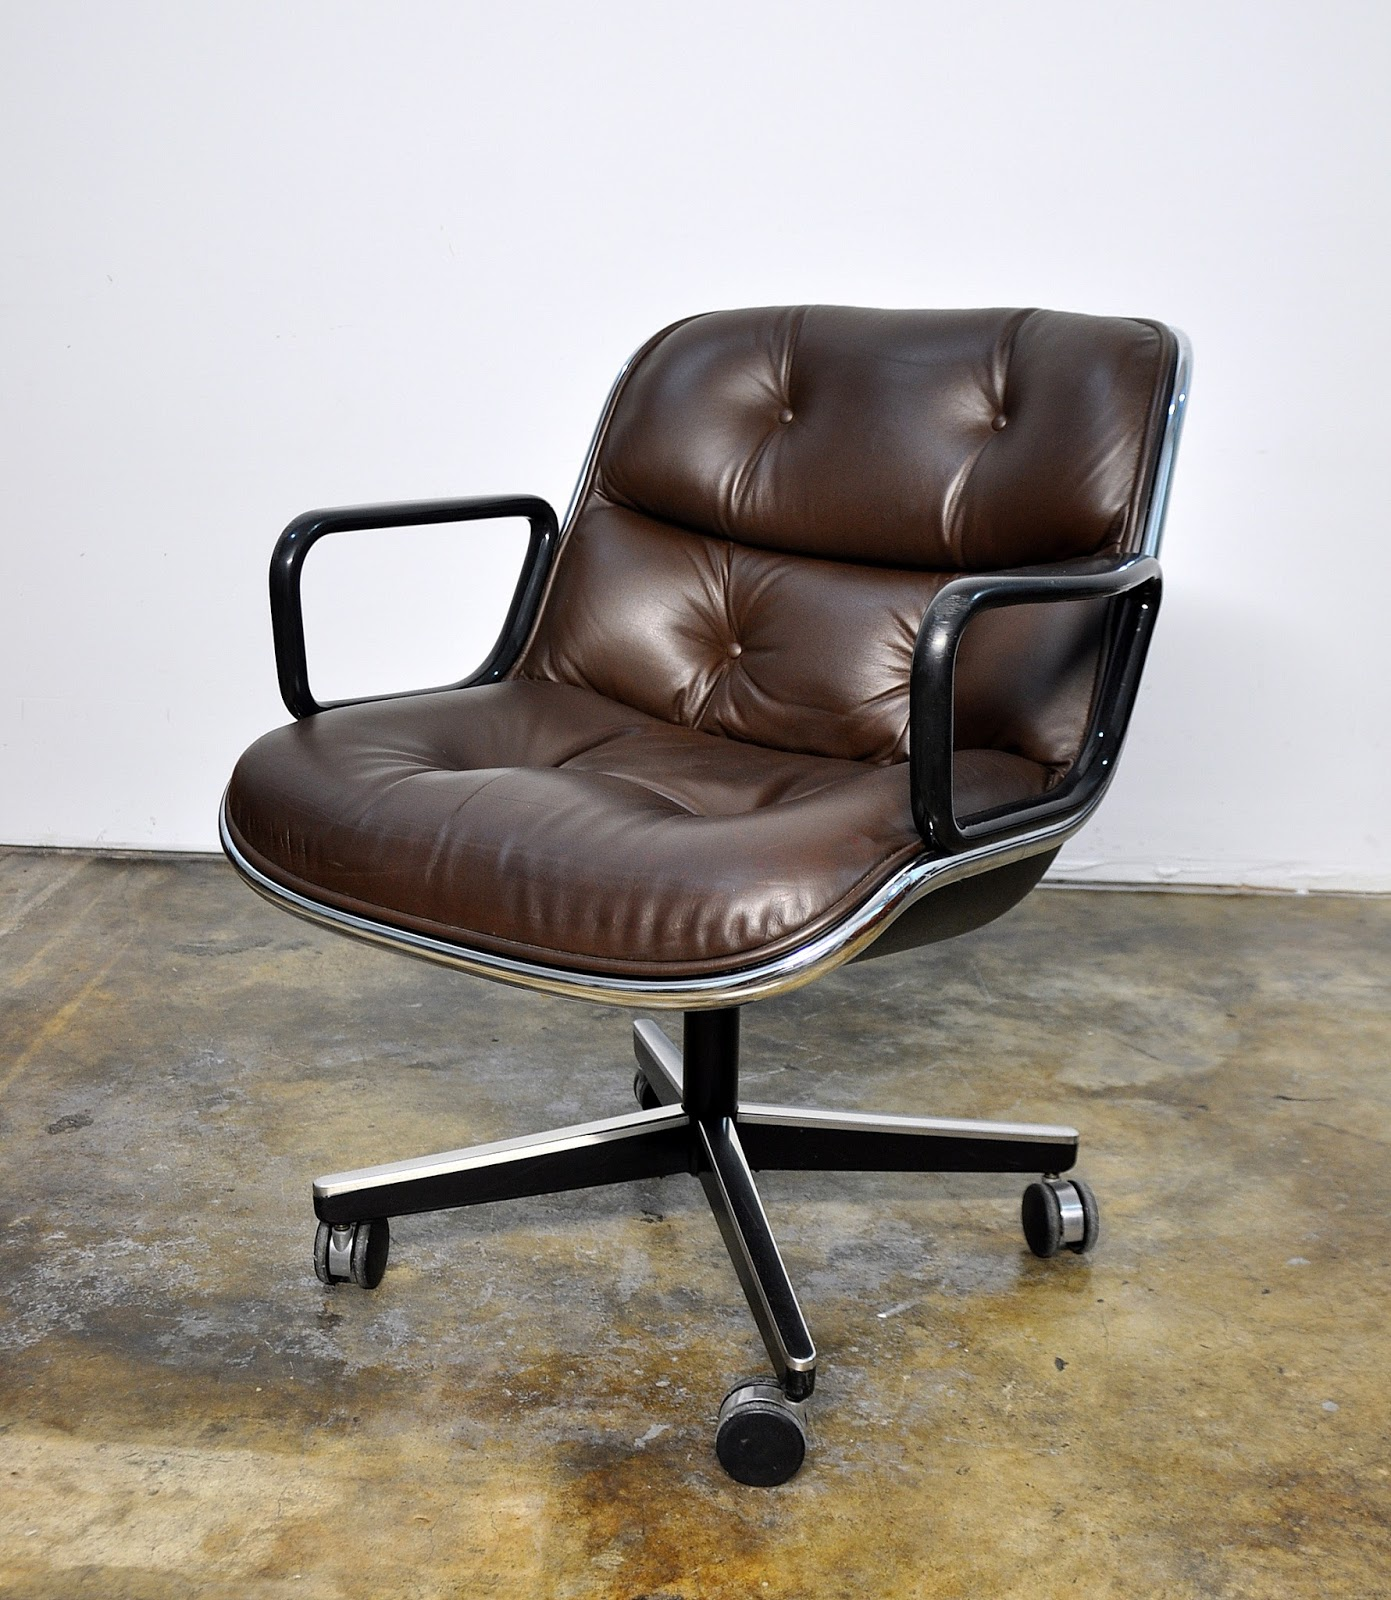 Knoll Pollock Chair Select Modern Charles Pollock For Knoll Leather Executive